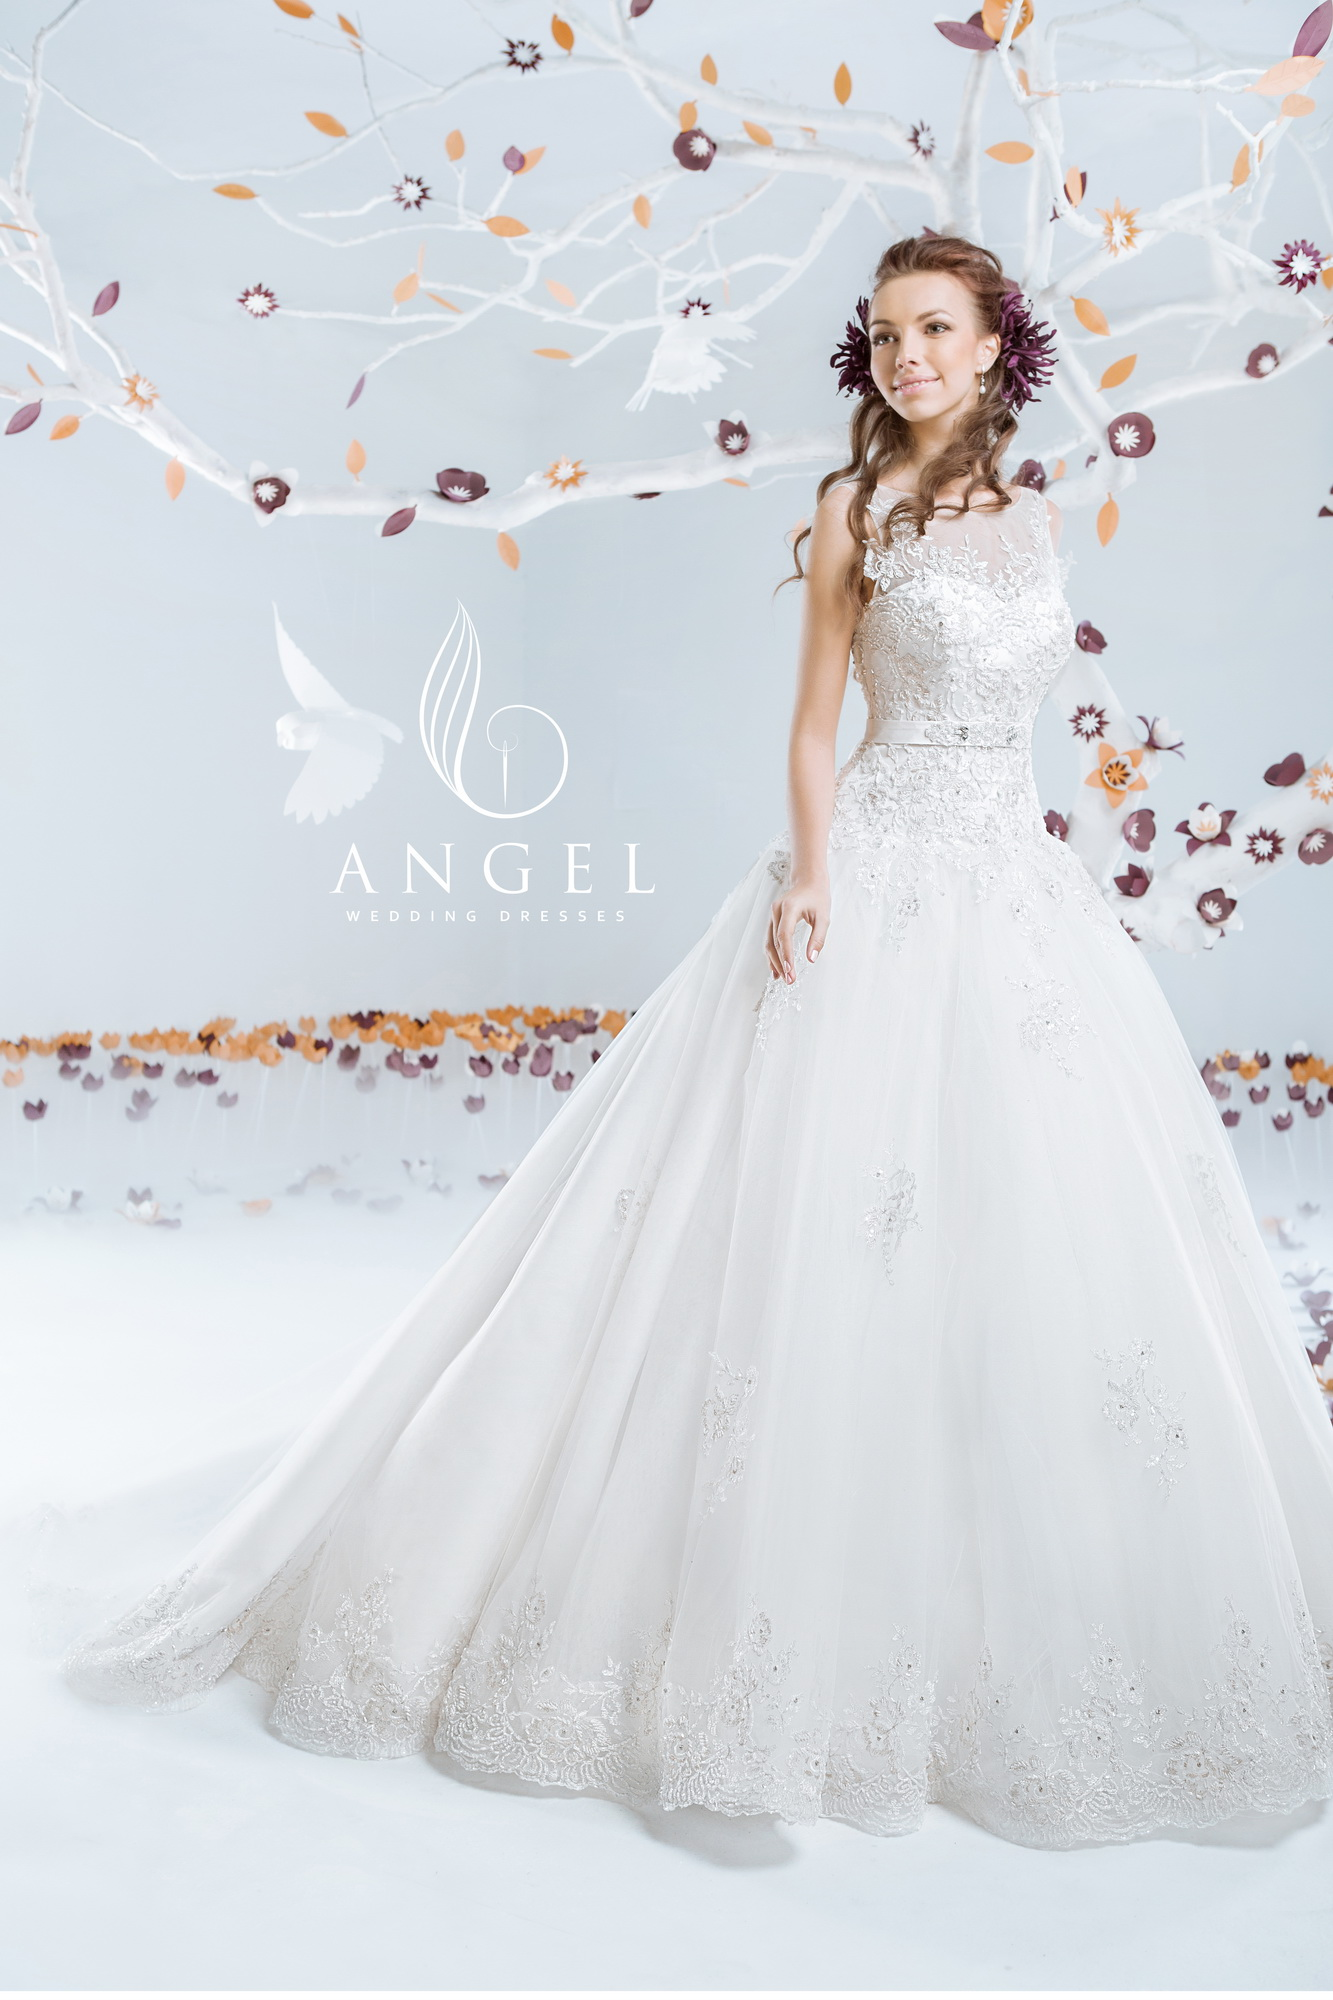 https://angel-novias.com/images/stories/virtuemart/product/Nona 250$.jpg